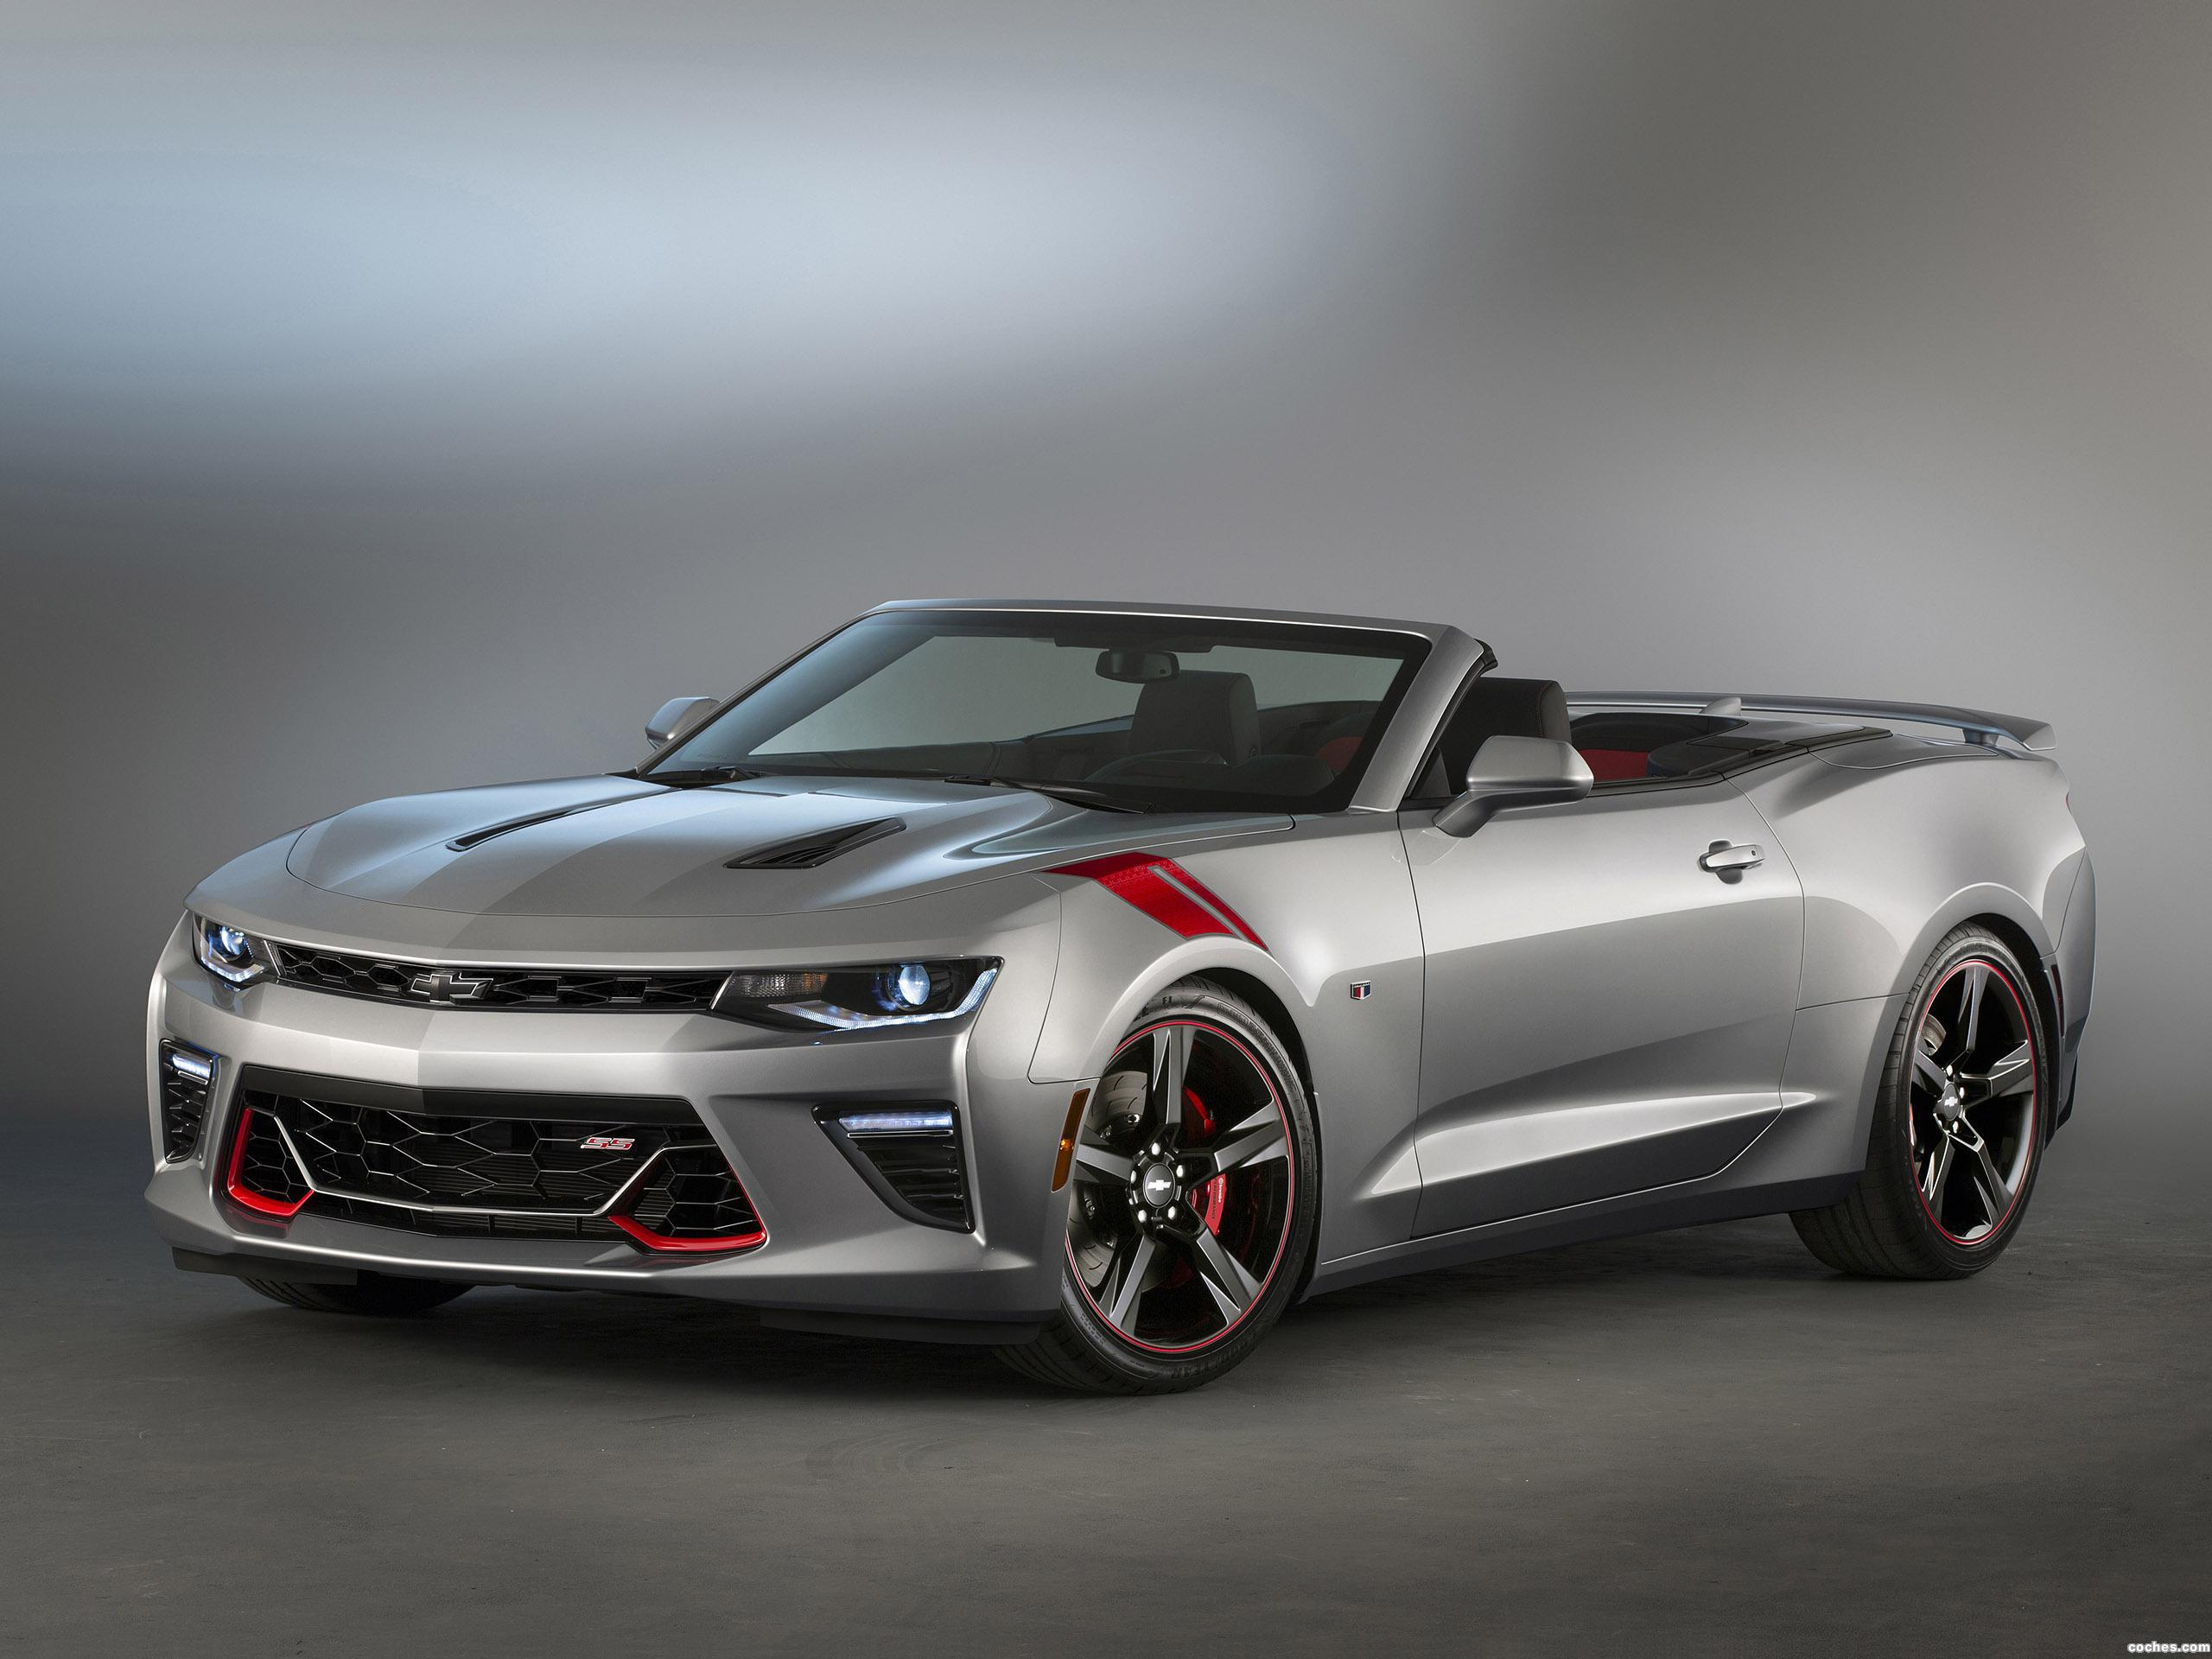 chevrolet_camaro-ss-convertible-red-accent-package-concept-2015_r4.jpg